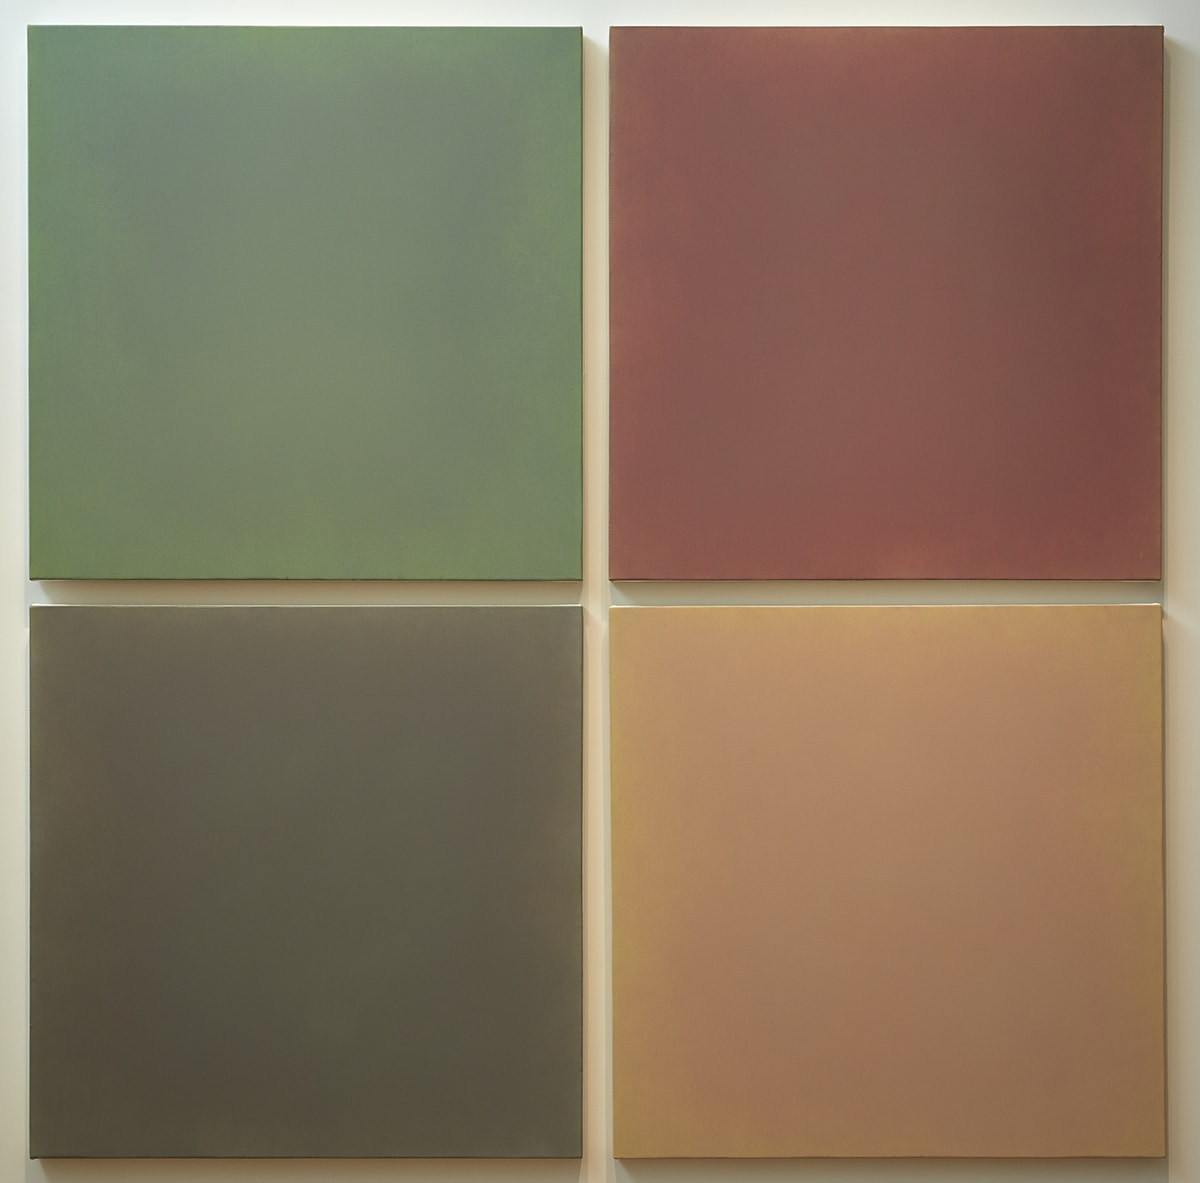 [Image description: Requiem for a Ponderosa Pine, Anne Appleby, each panel 44 x 44 inches; overall: 90 x 90 inches, oil and wax on canvas. Four square panels, each a different color, grouped to form one larger square. The panels are arranged two over two. At top left, the first panel is a deep green and at top right the panel is reddish-purple. Bottom left contains the blackish-brown panel next to the faded orange or cantaloupe colored one at bottom right. The squares are hung so they are separated by narrow strips of the wall behind them. The panels appear to be solid blocks of color but closer inspection reveals subtle variations of shades and depth of color.]